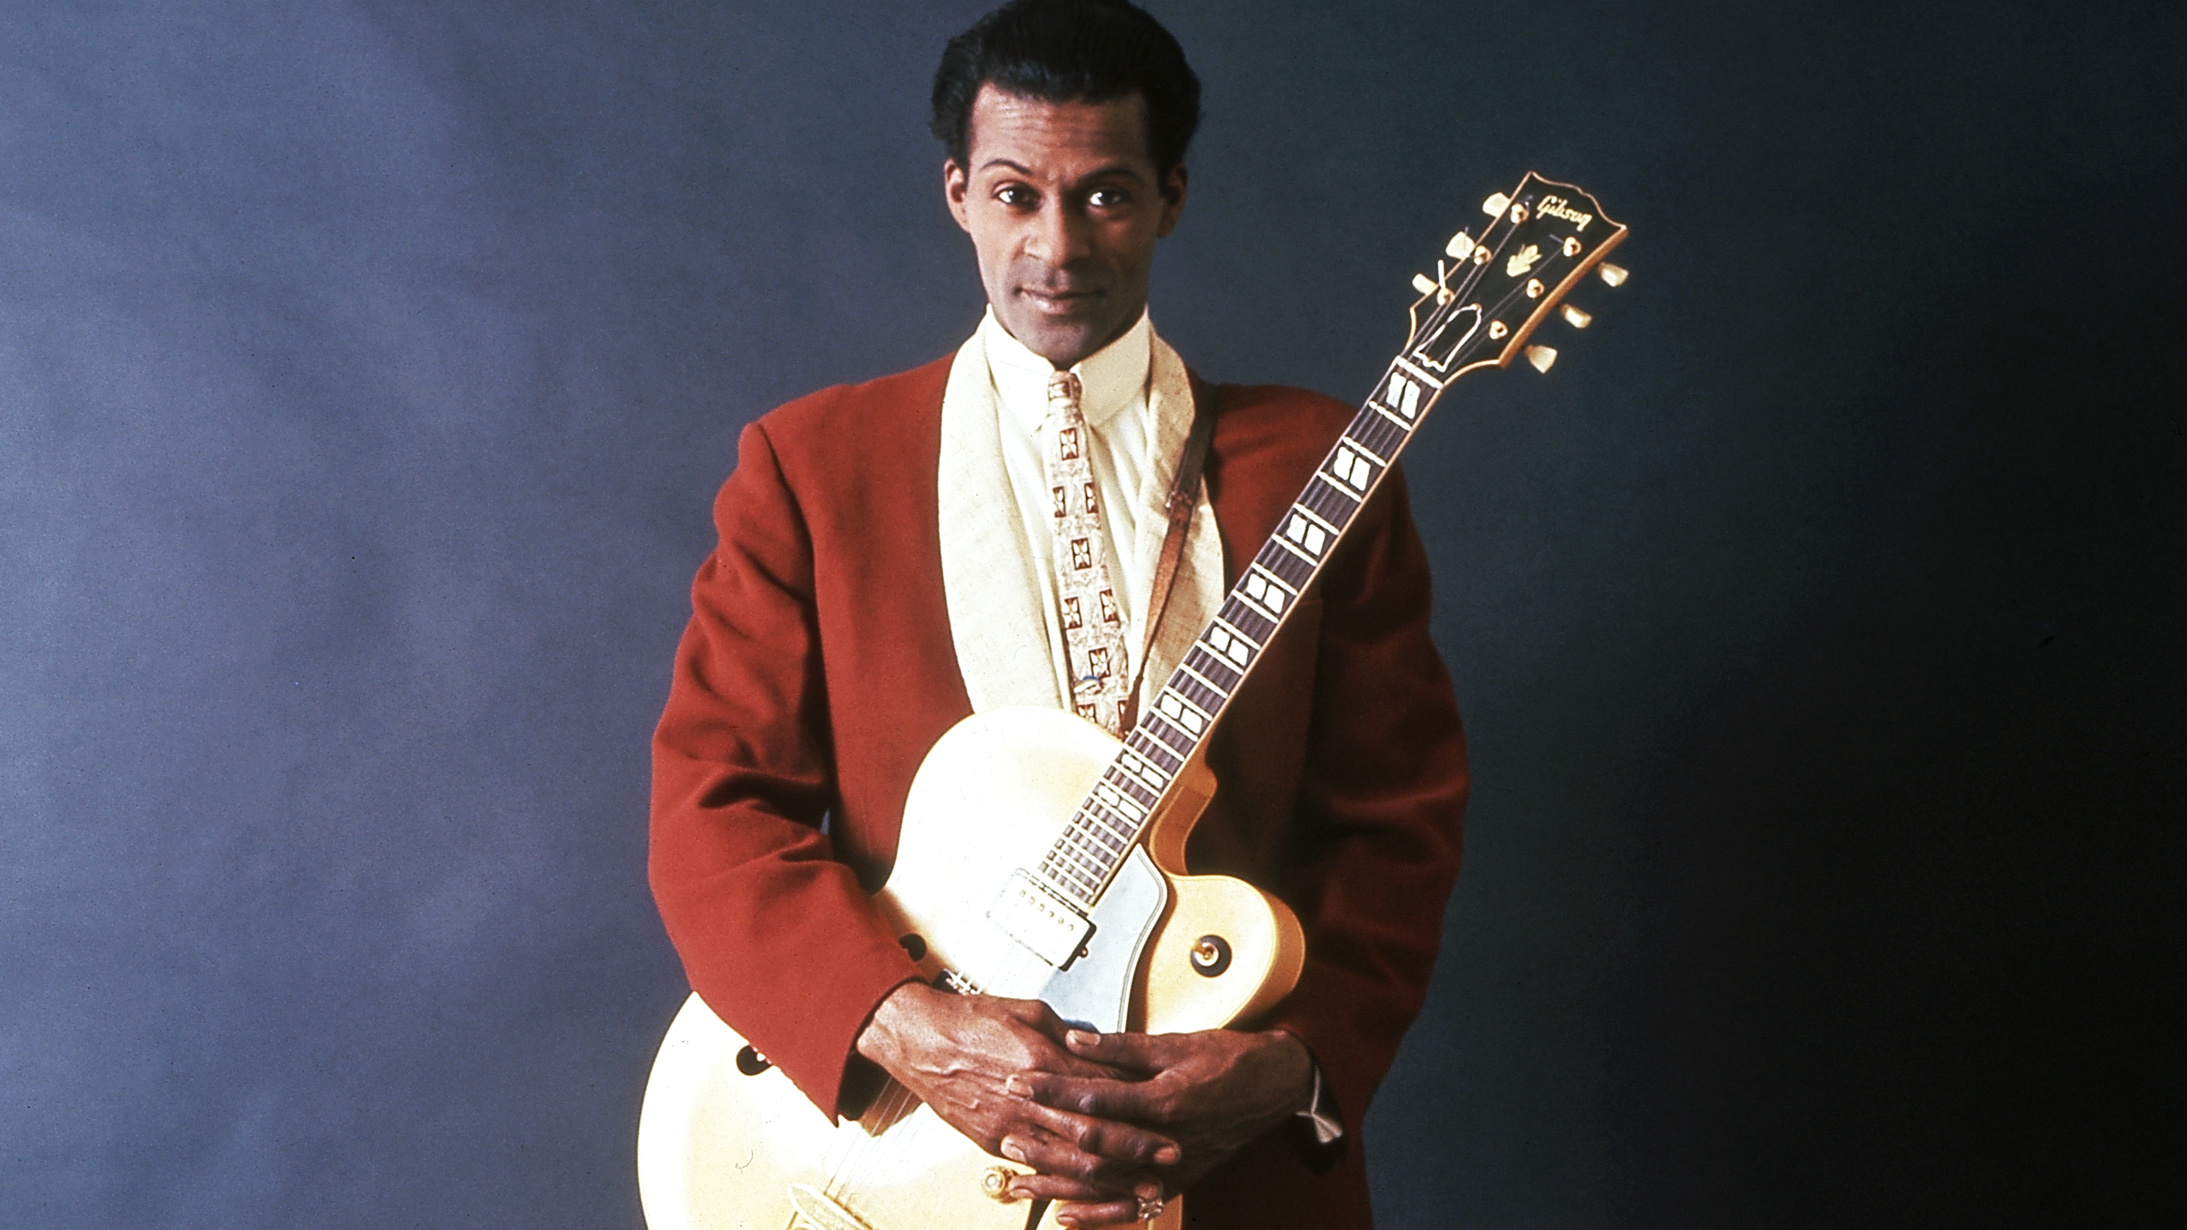 chuck-berry-essential-list-songs-listen-ed817d62-1b80-49b9-8a45-4d90294ec90a